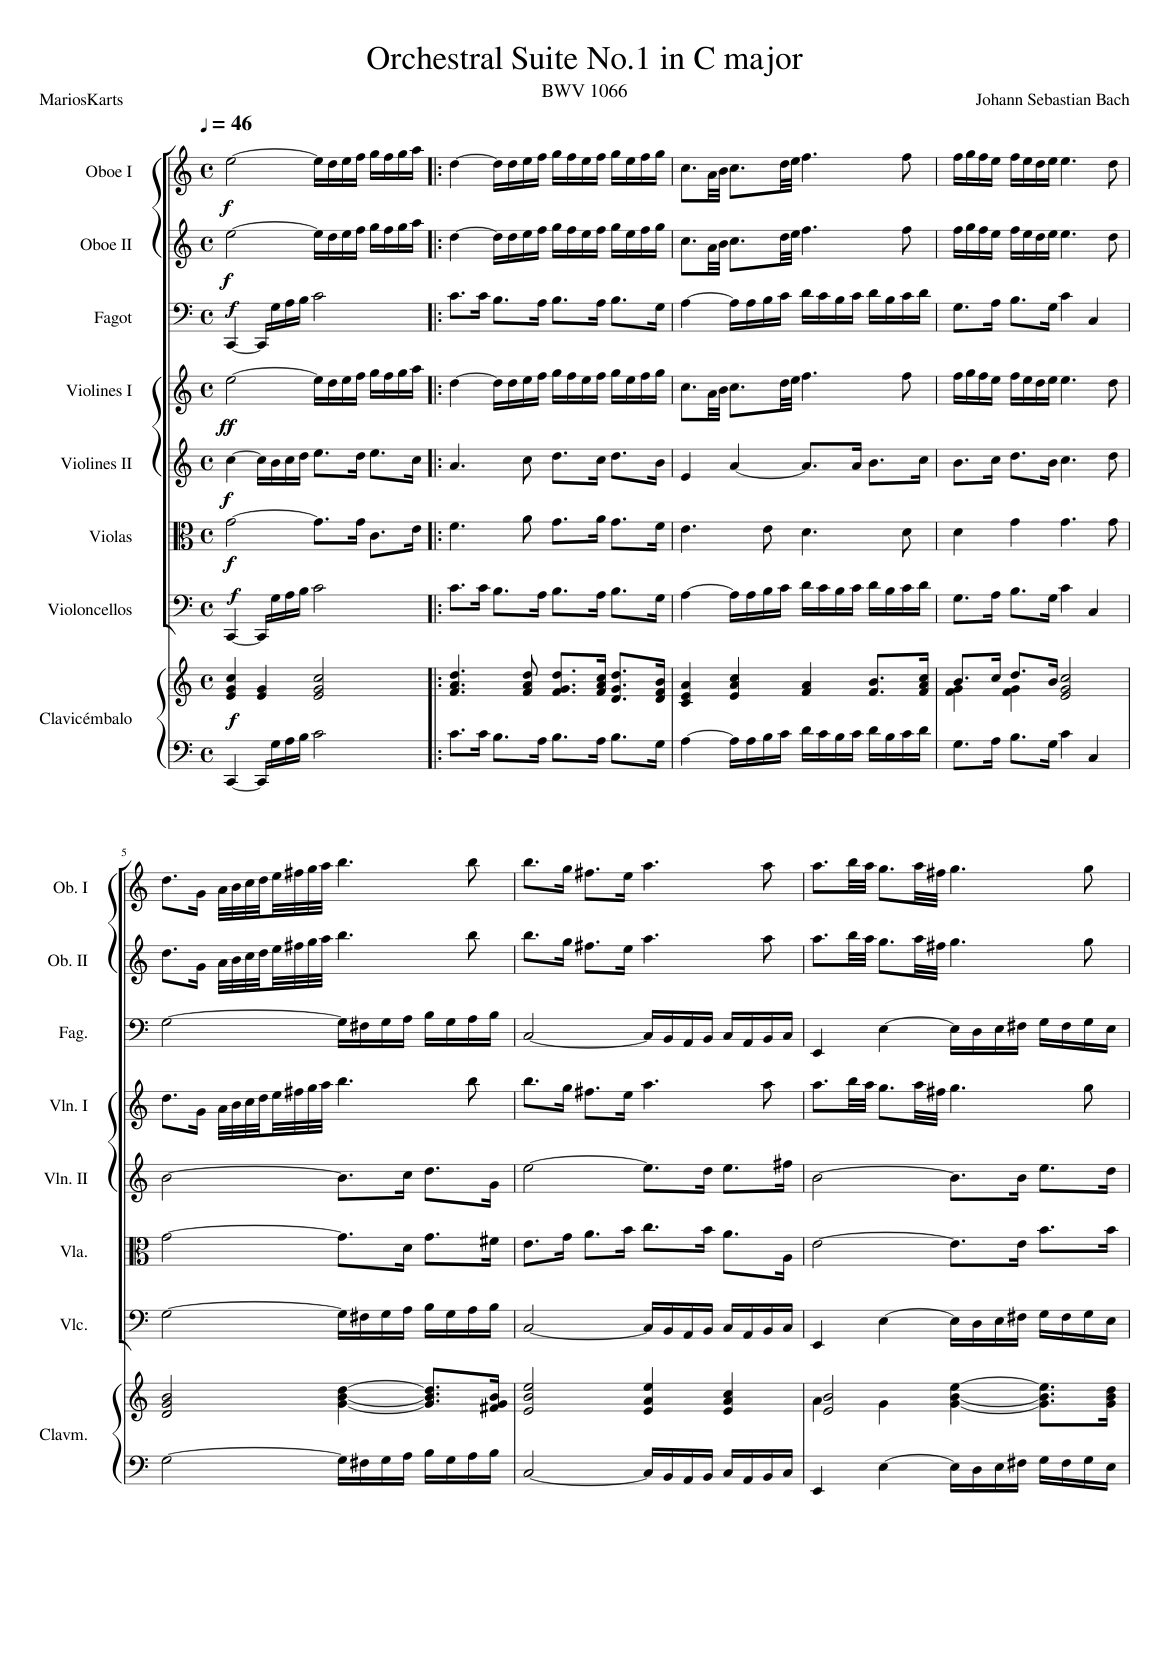 orchestral suite no. 1 in c major, bwv 1066 (wip) sheet music for strings  group, oboe, bassoon, harpsichord (mixed ensemble)   musescore.com  musescore.com